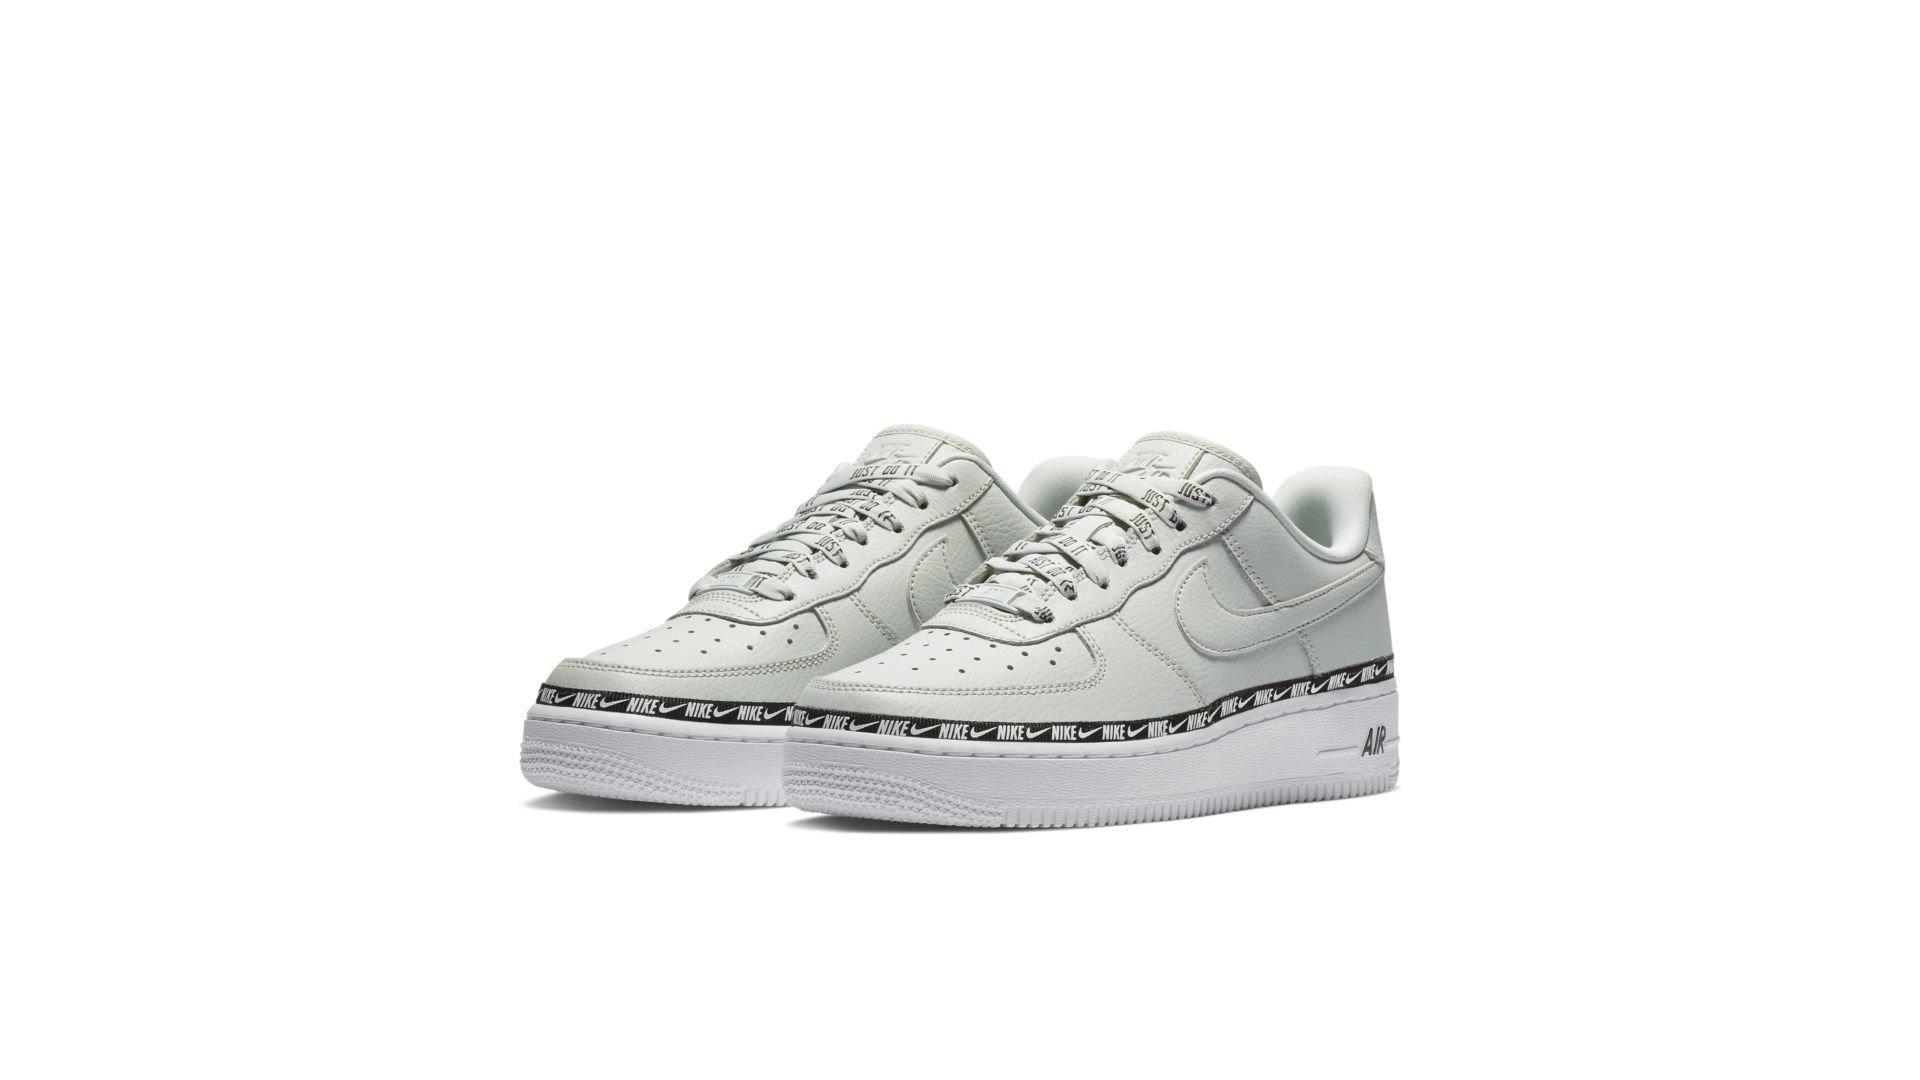 finest selection 520ad e87a7 Nike WMNS Air Force 1  07 Premium  Light Silver  (AH6827-003)